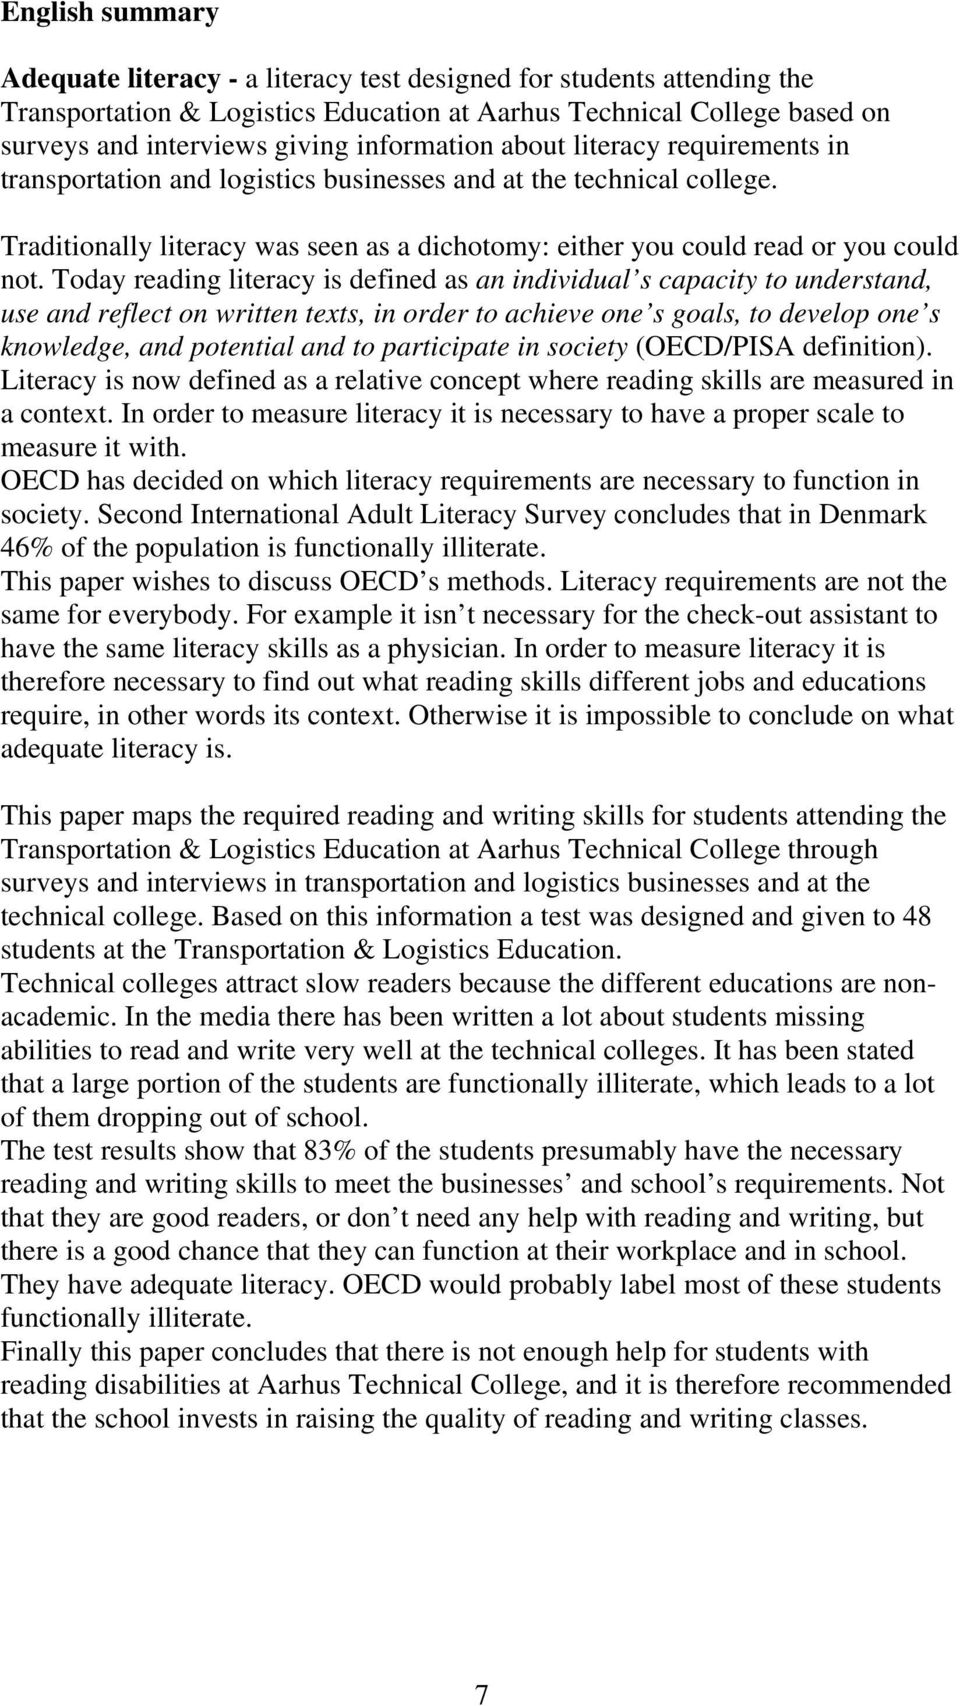 Today reading literacy is defined as an individual s capacity to understand, use and reflect on written texts, in order to achieve one s goals, to develop one s knowledge, and potential and to